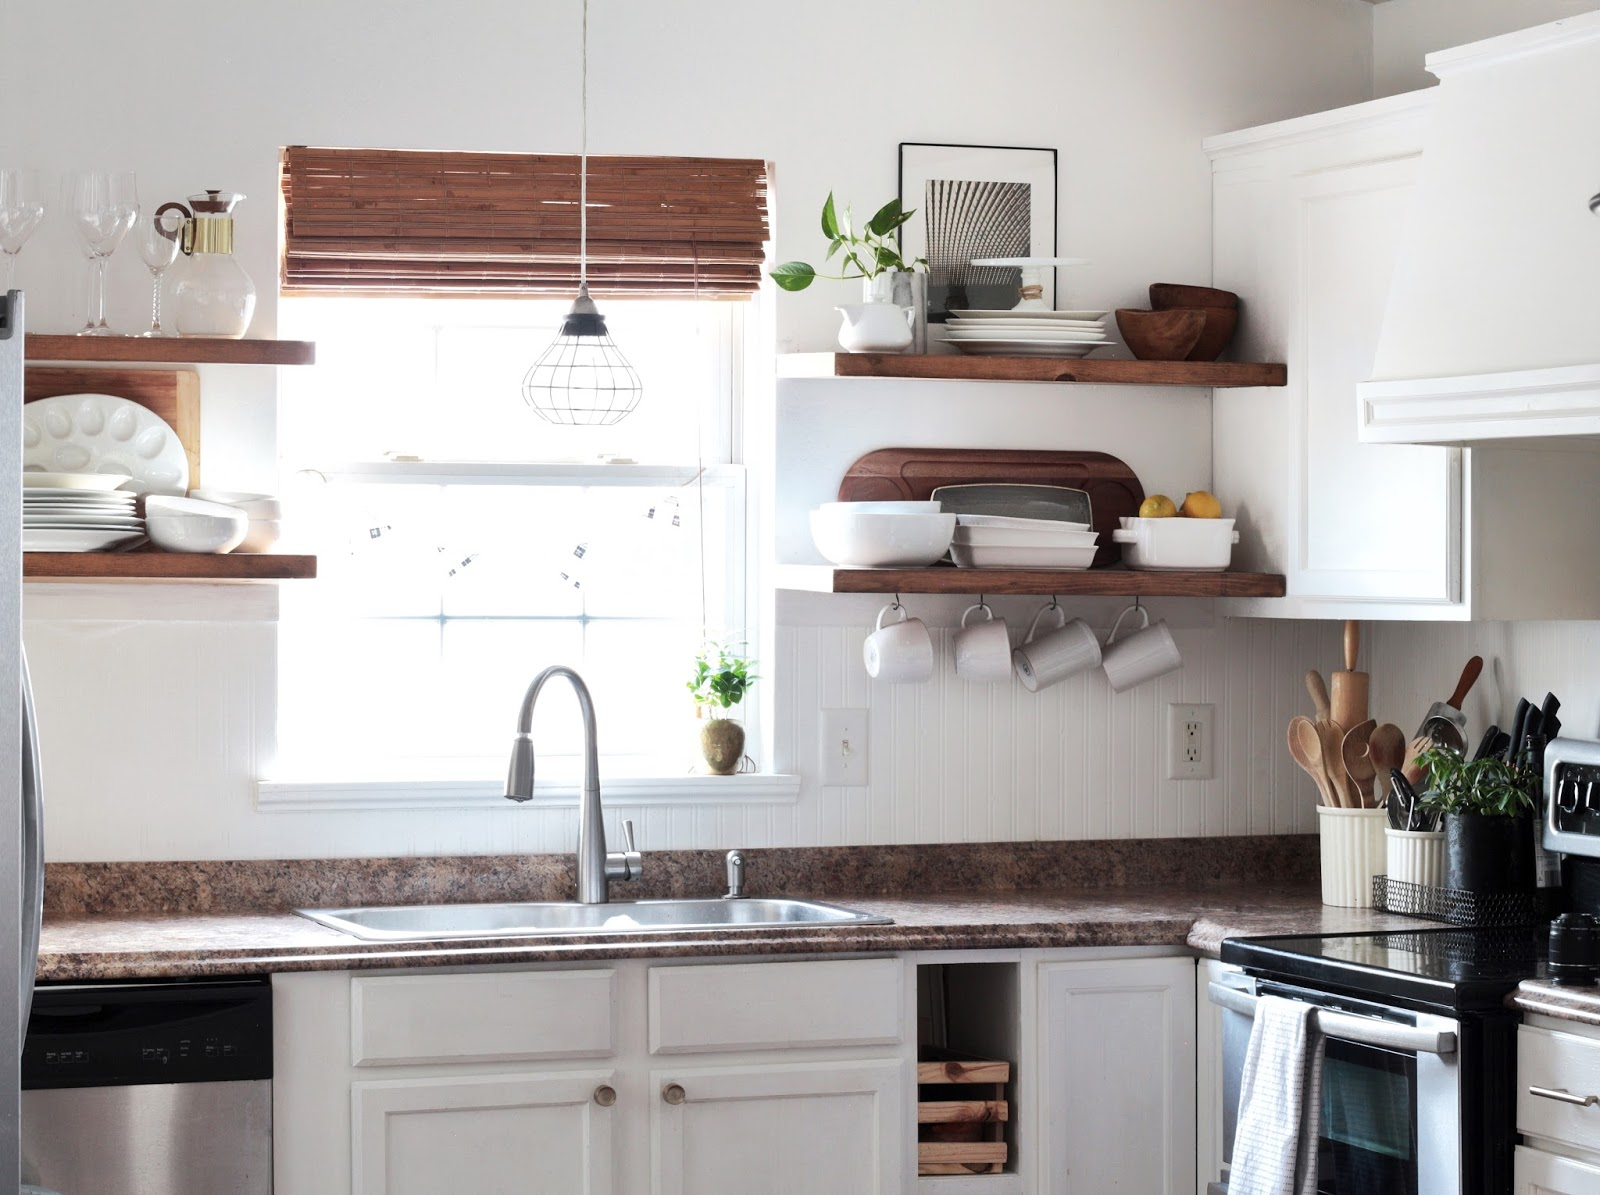 made carli diy kitchen how install floating shelves with open cabinets little over three years ago removed most upper and installed shelving our was one favorite updates quarter